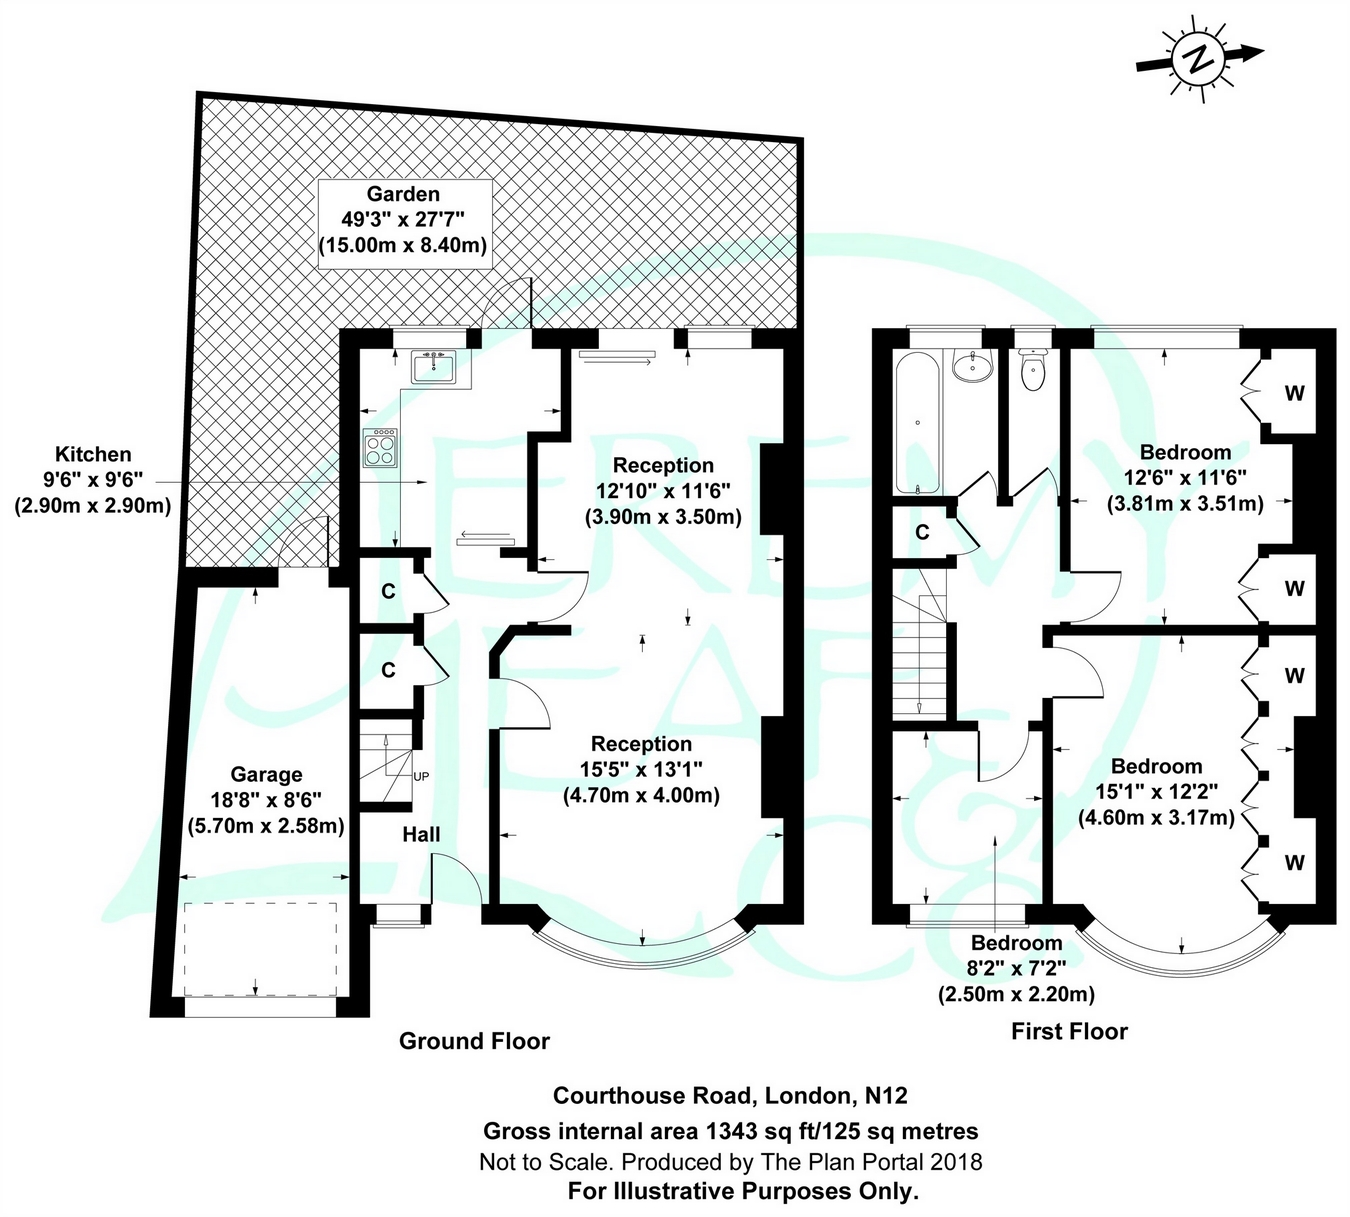 3 Bedrooms Semi-detached bungalow for sale in Courthouse Road, West Finchley N12